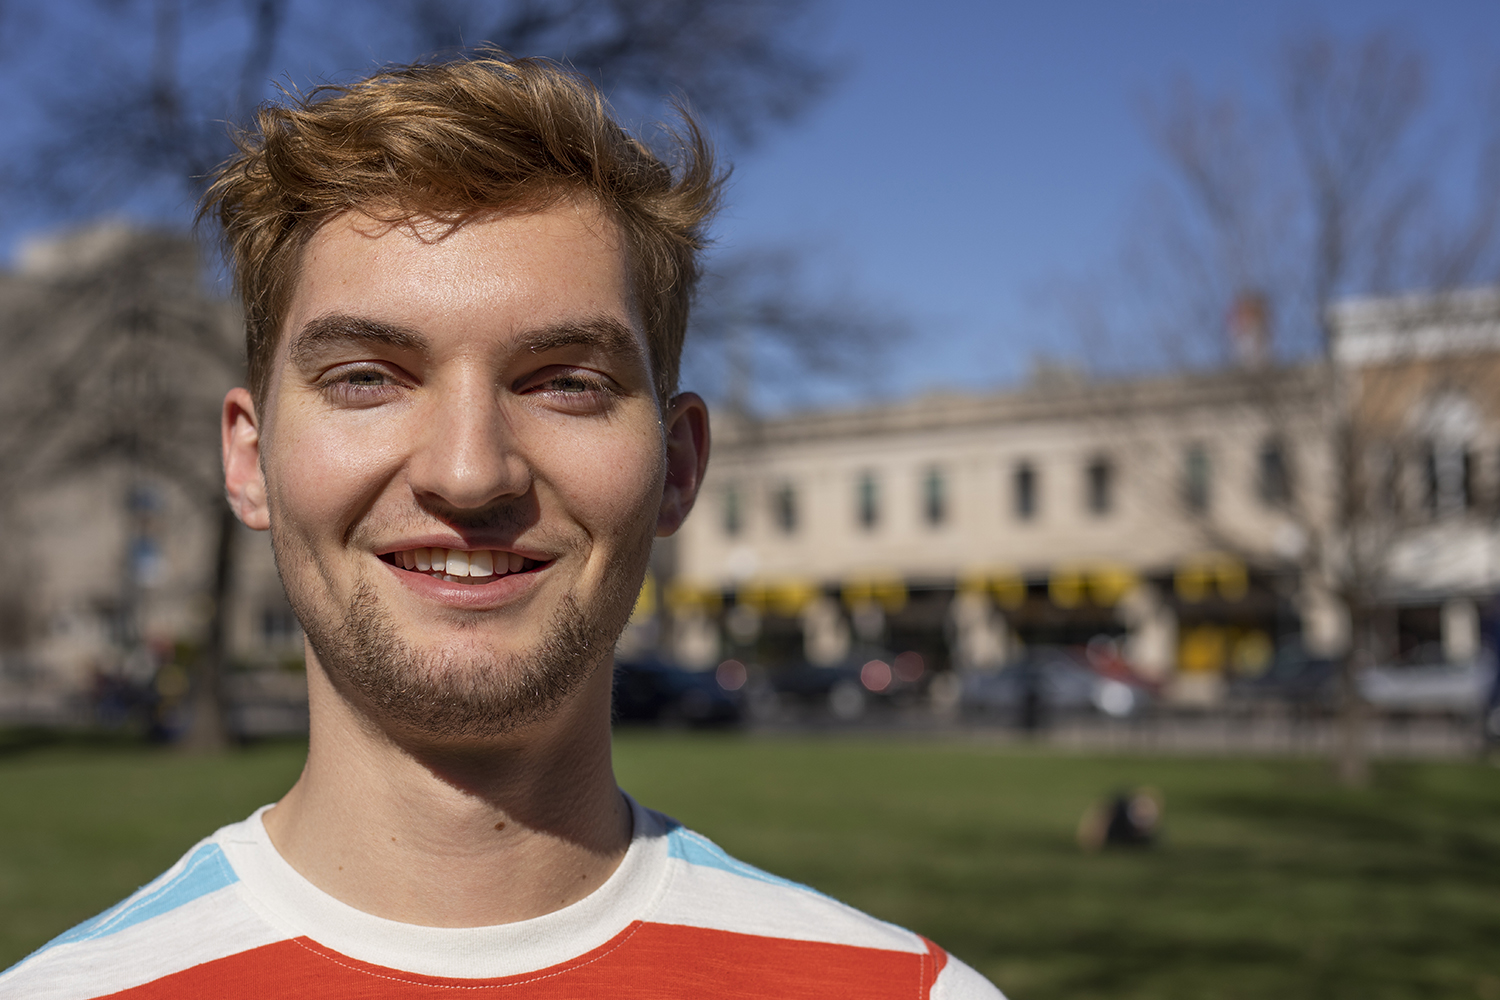 University of Iowa student Mark Schoen stands outside of Schaefer Hall for a portrait on Monday, April 8, 2019.